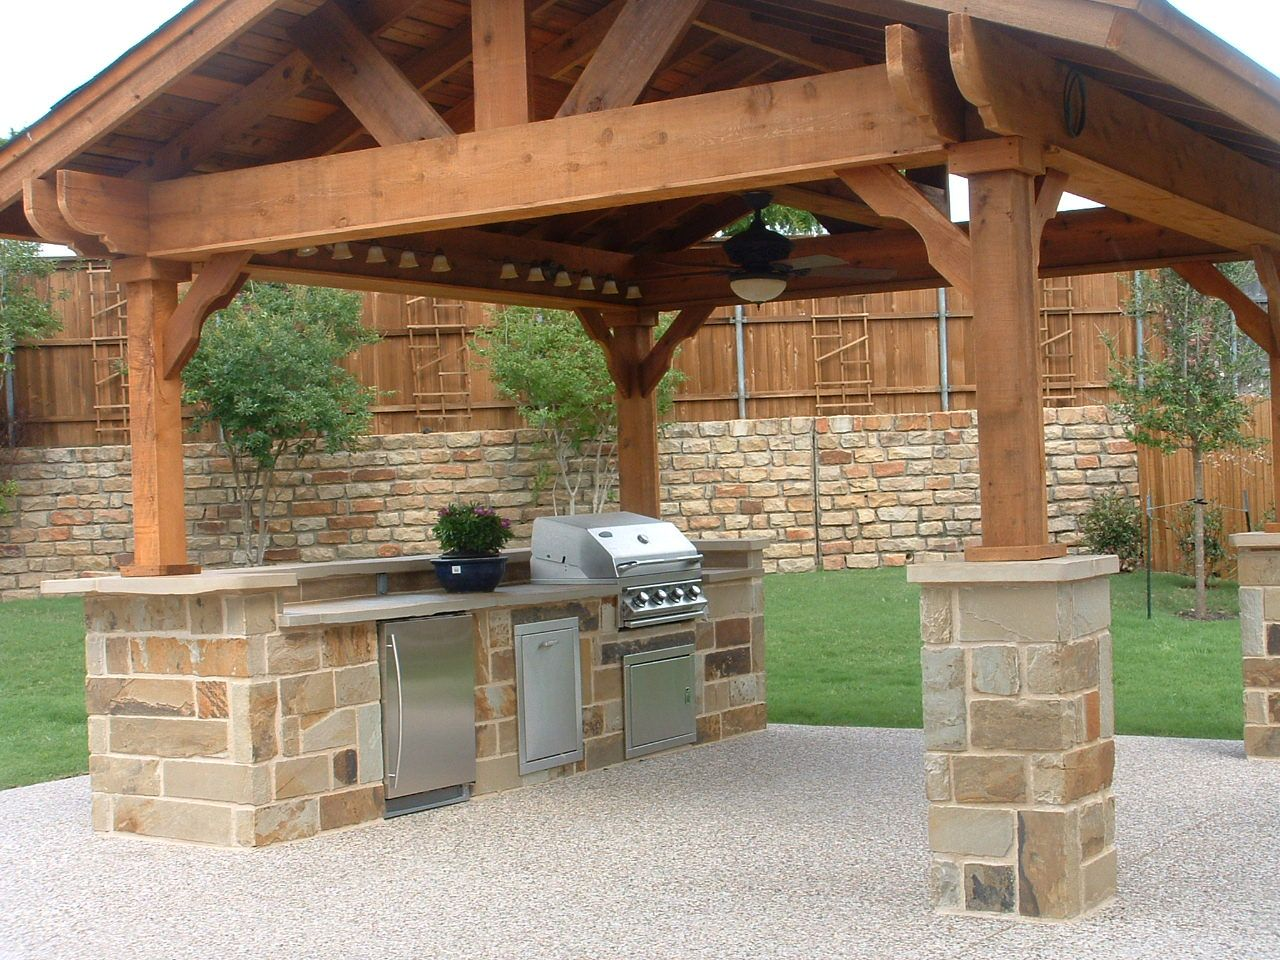 Outdoor Kitchen Design Amazing Outdoor Kitchen Designs Design Decks And Kitchen Designs